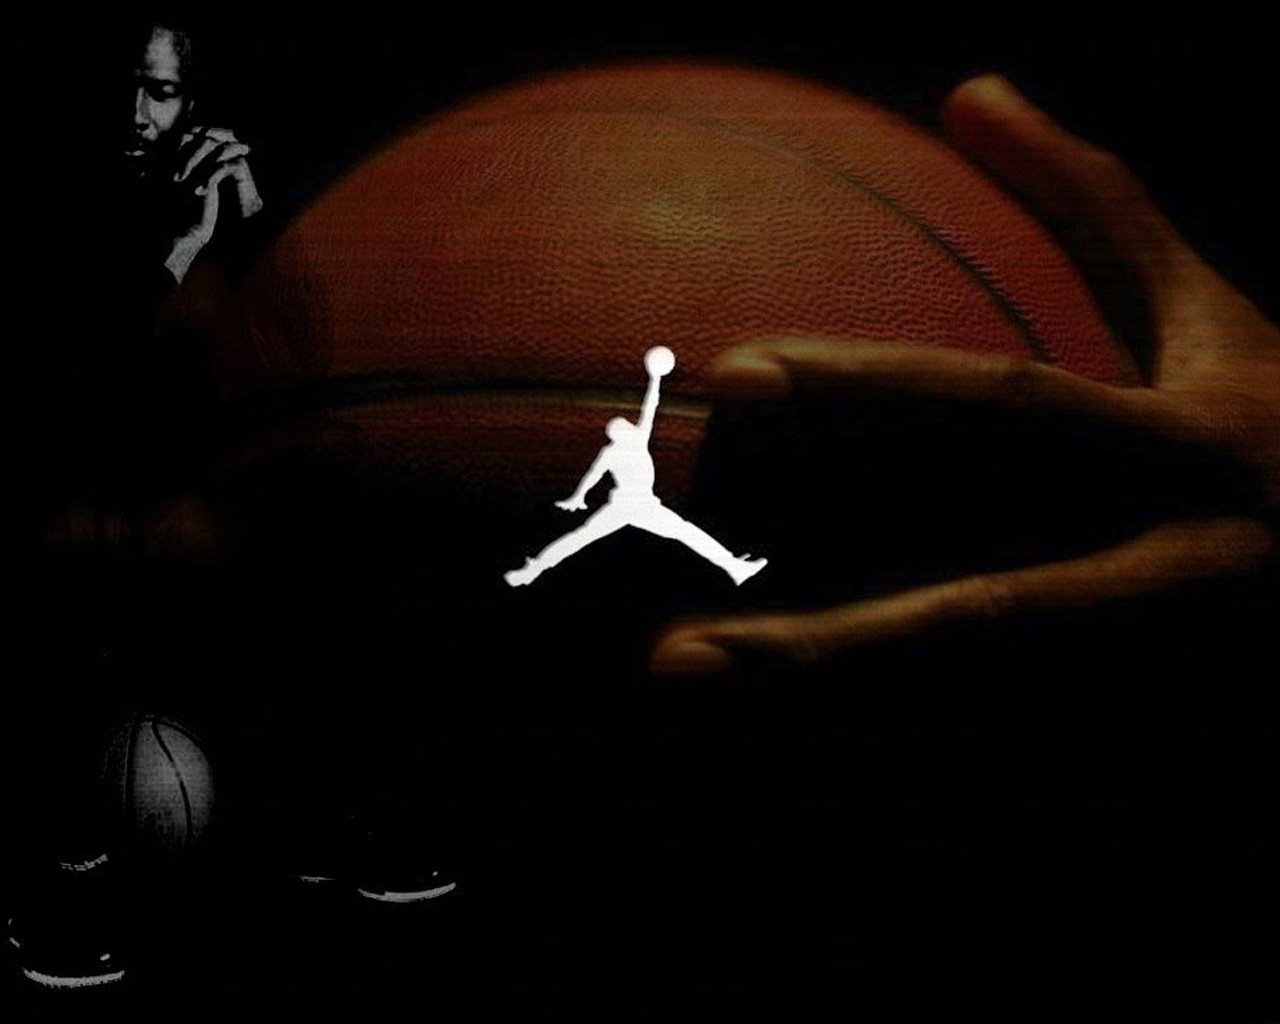 TOP HD WALLPAPERS: BASKETBALL HD WALLPAPERS